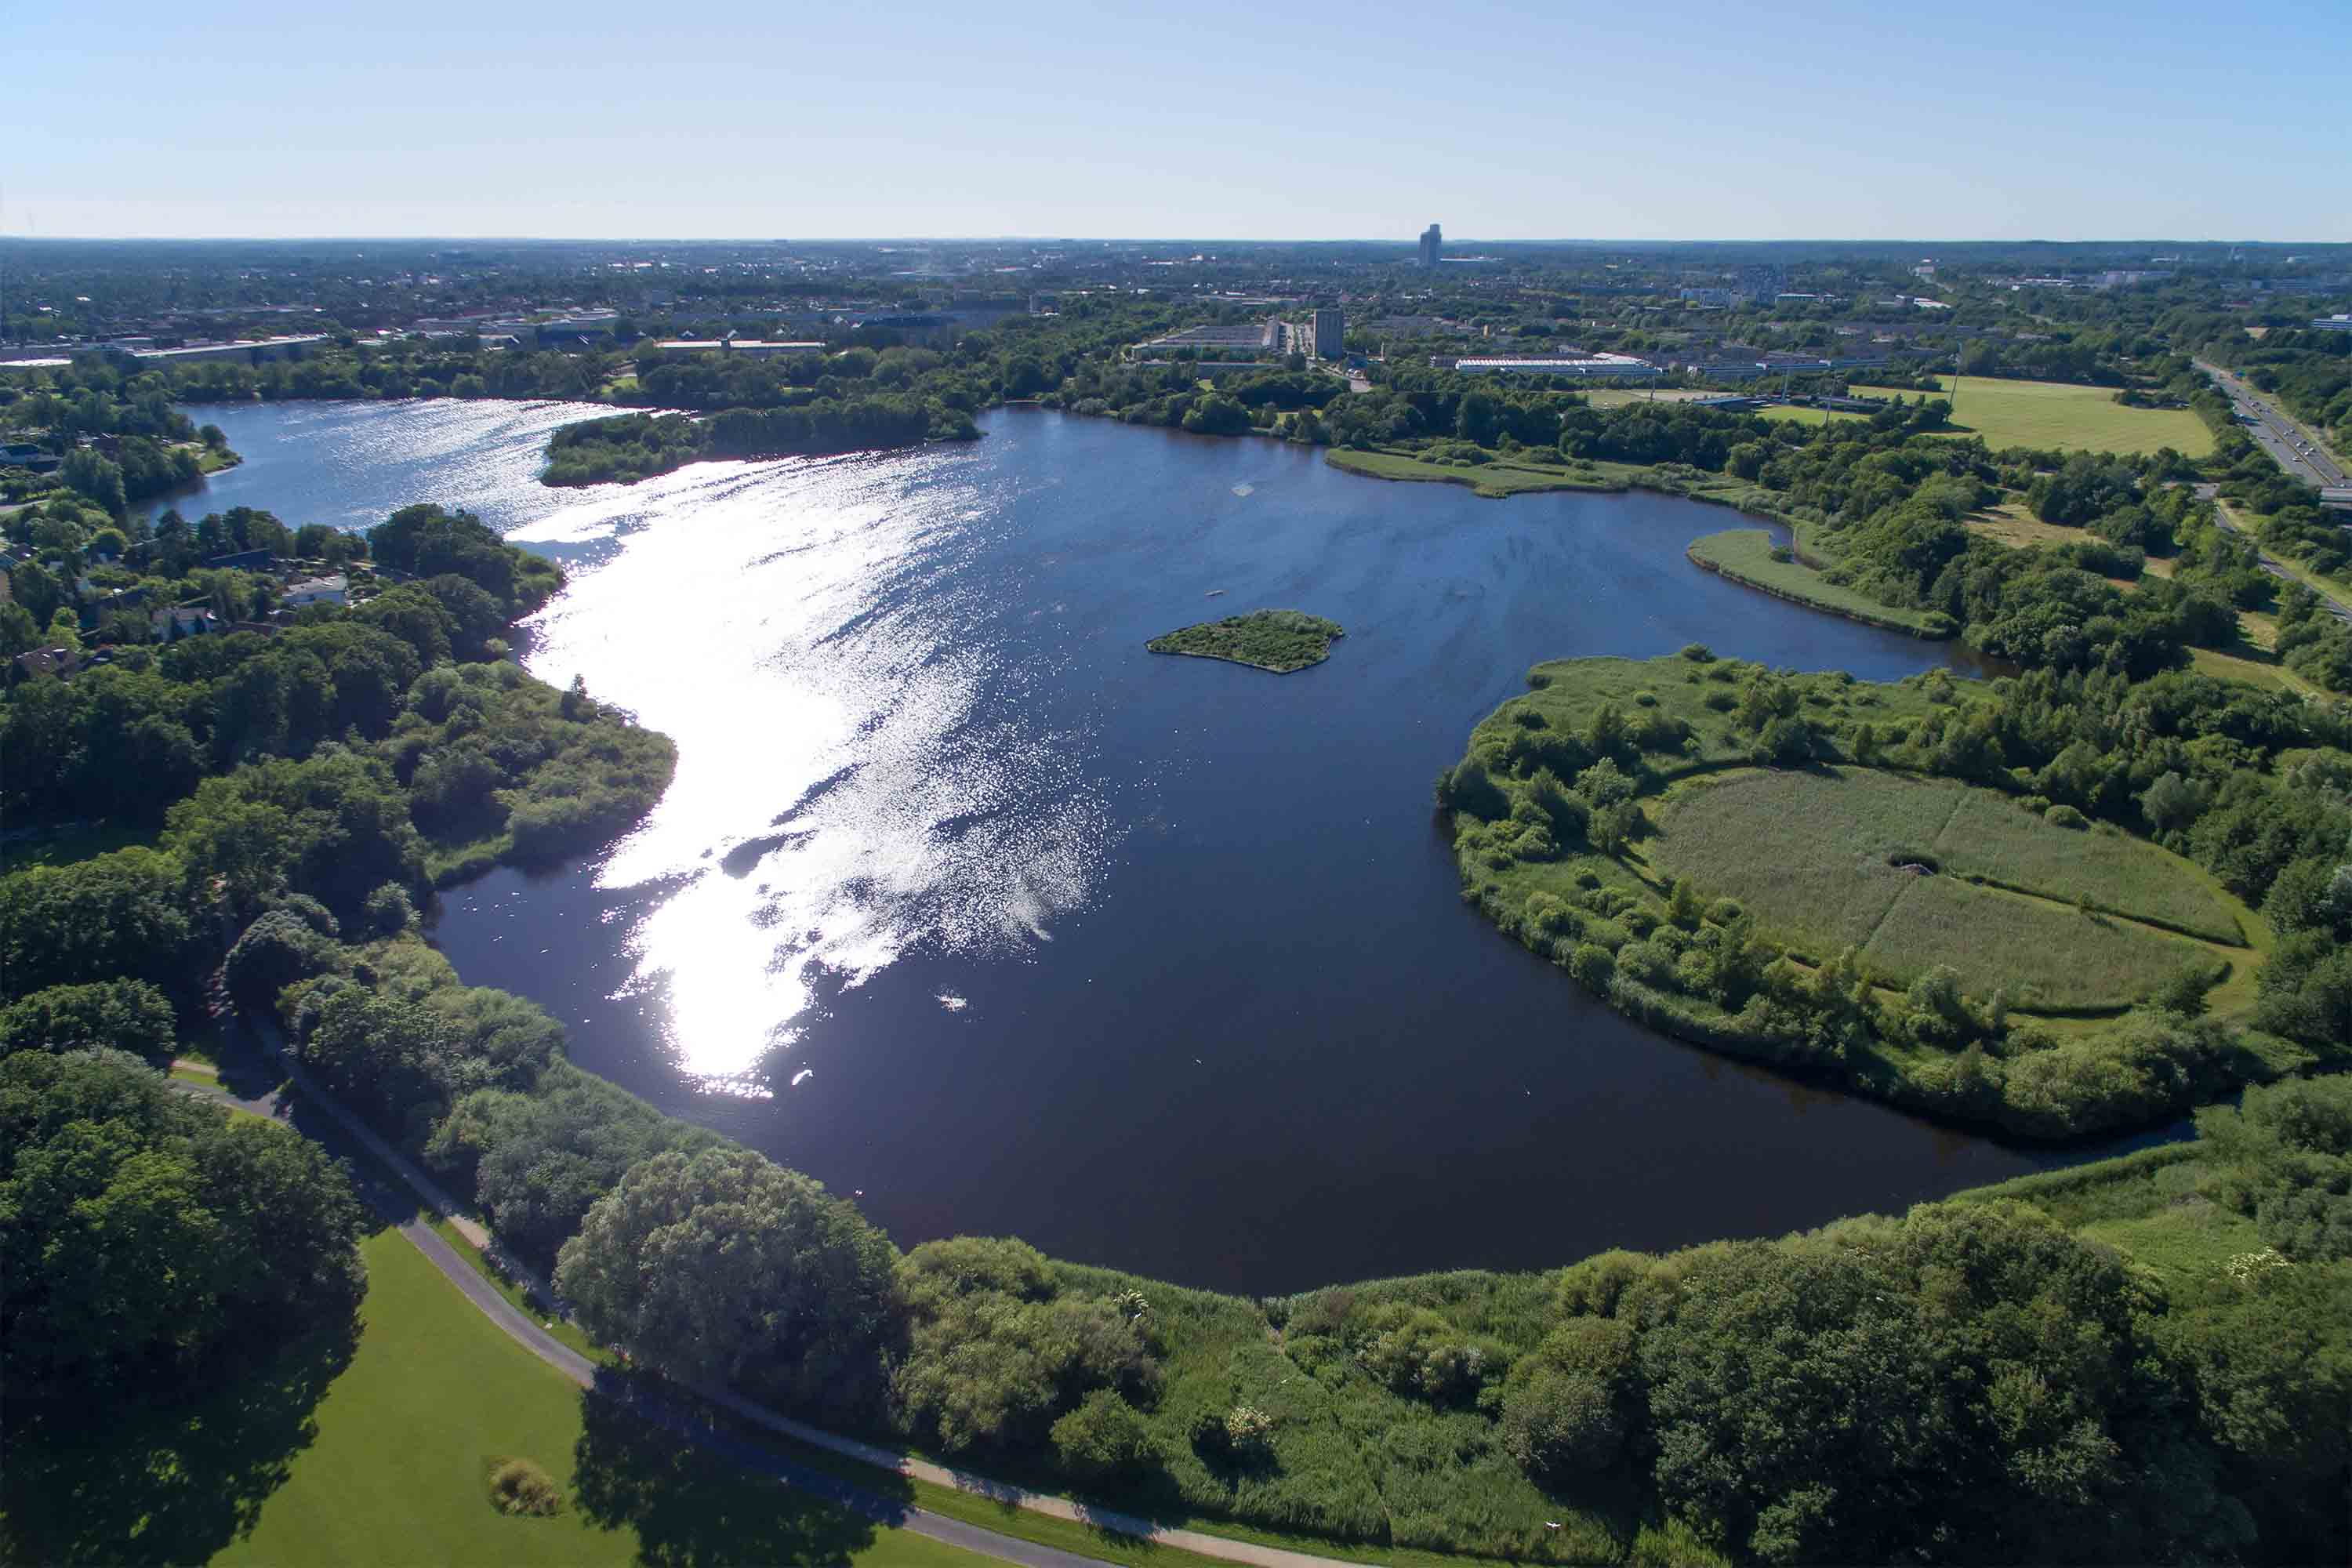 aerial view of utterslev mire part 1 located in zealand denmark